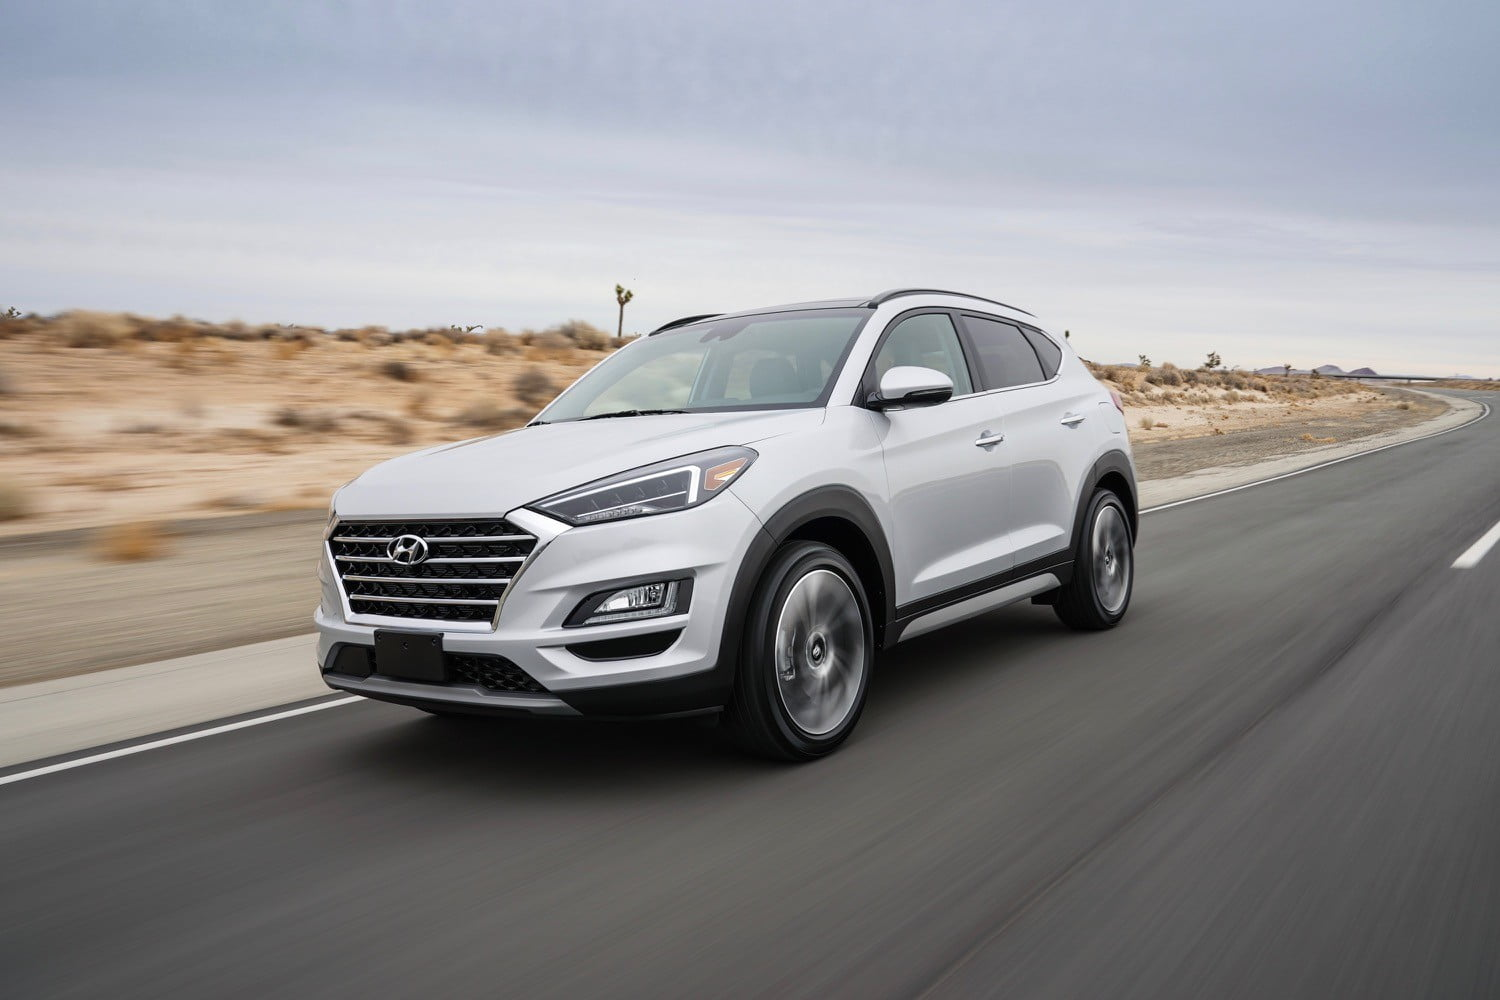 hyundai tucson n reportedly coming soon with 340 hp. Black Bedroom Furniture Sets. Home Design Ideas